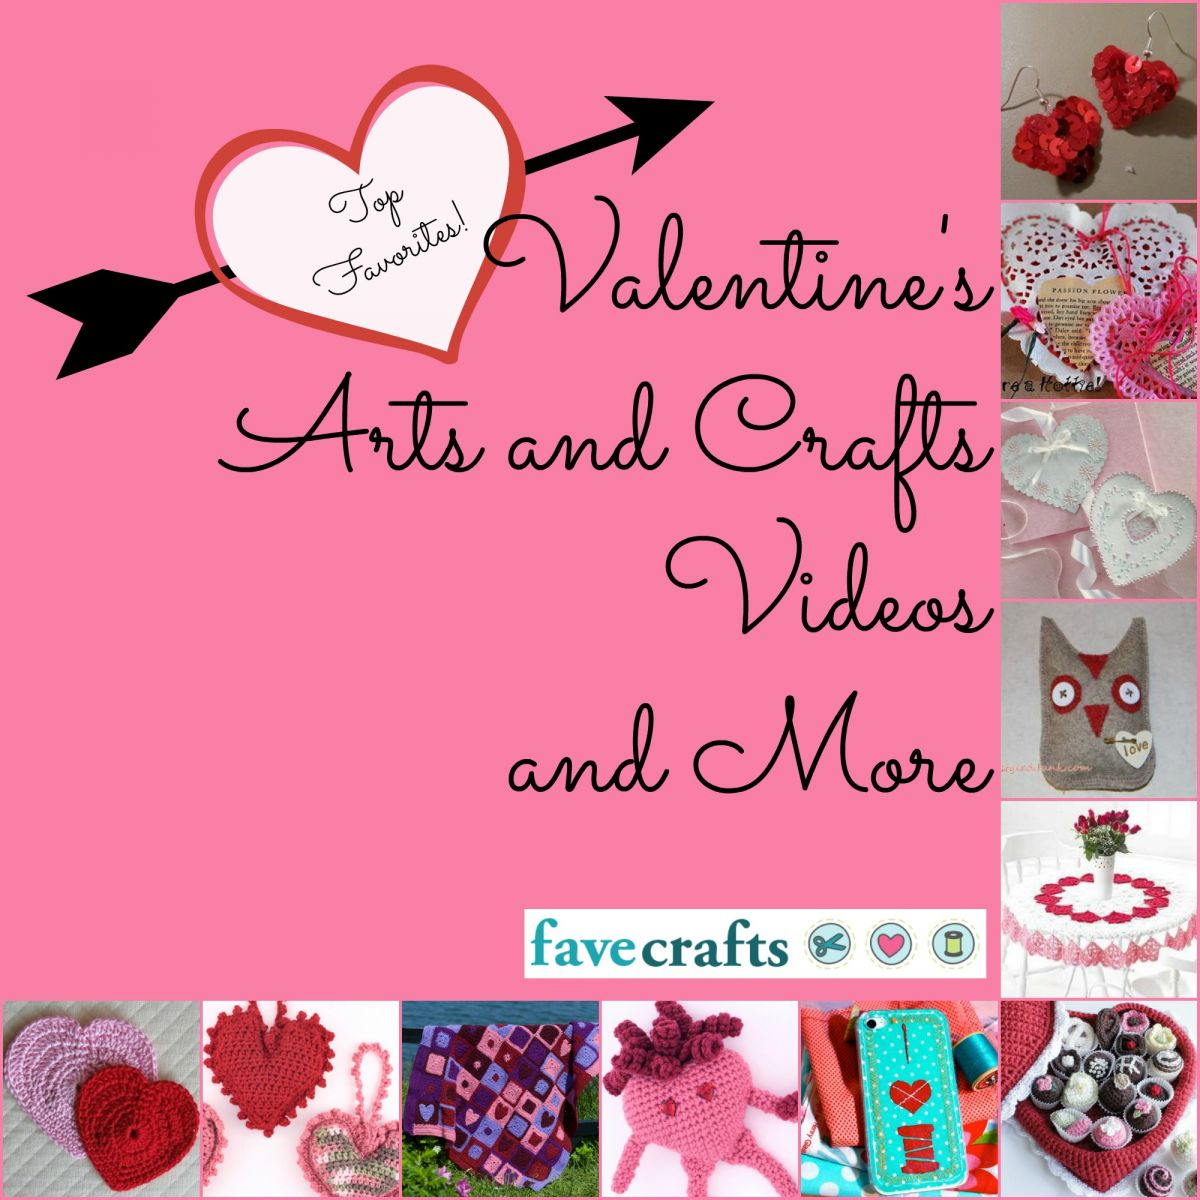 Top Valentine's Arts and Crafts, Videos, and More